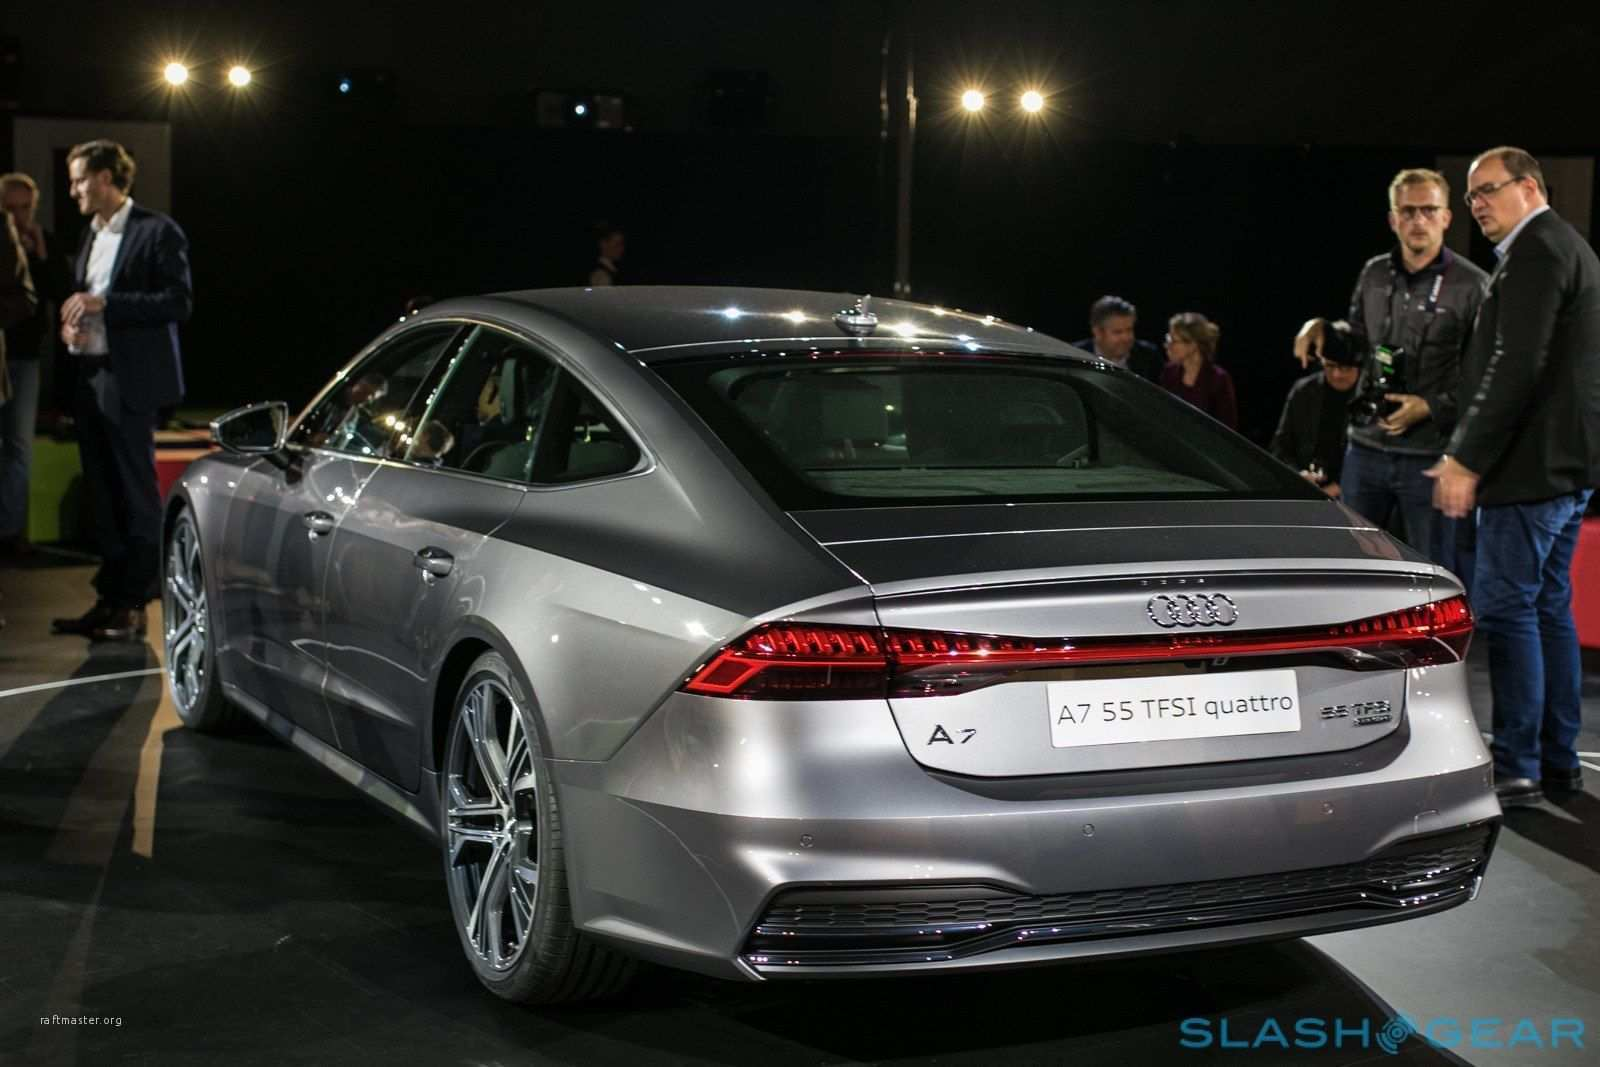 66 Best Review 2019 Audi A7 Release Date Research New with 2019 Audi A7 Release Date